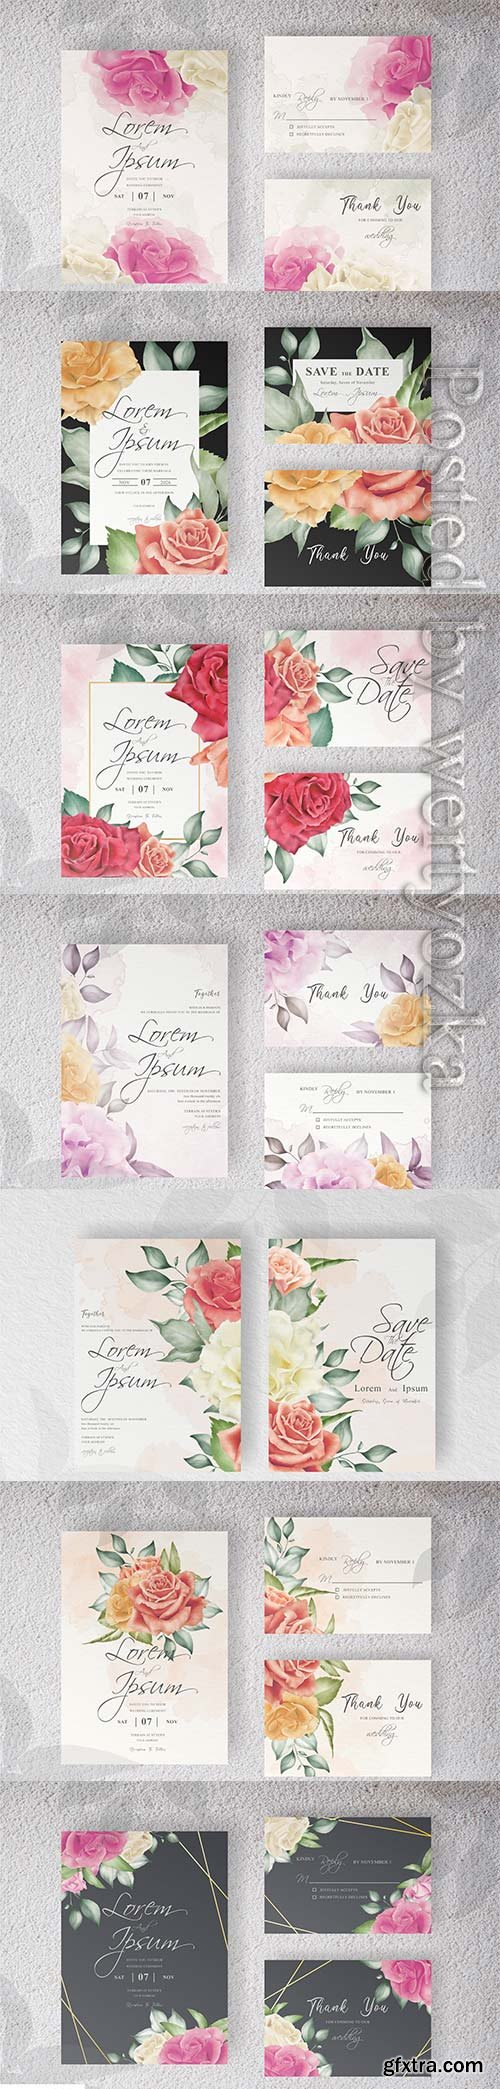 Wedding invitation with beautiful floral and watercolor